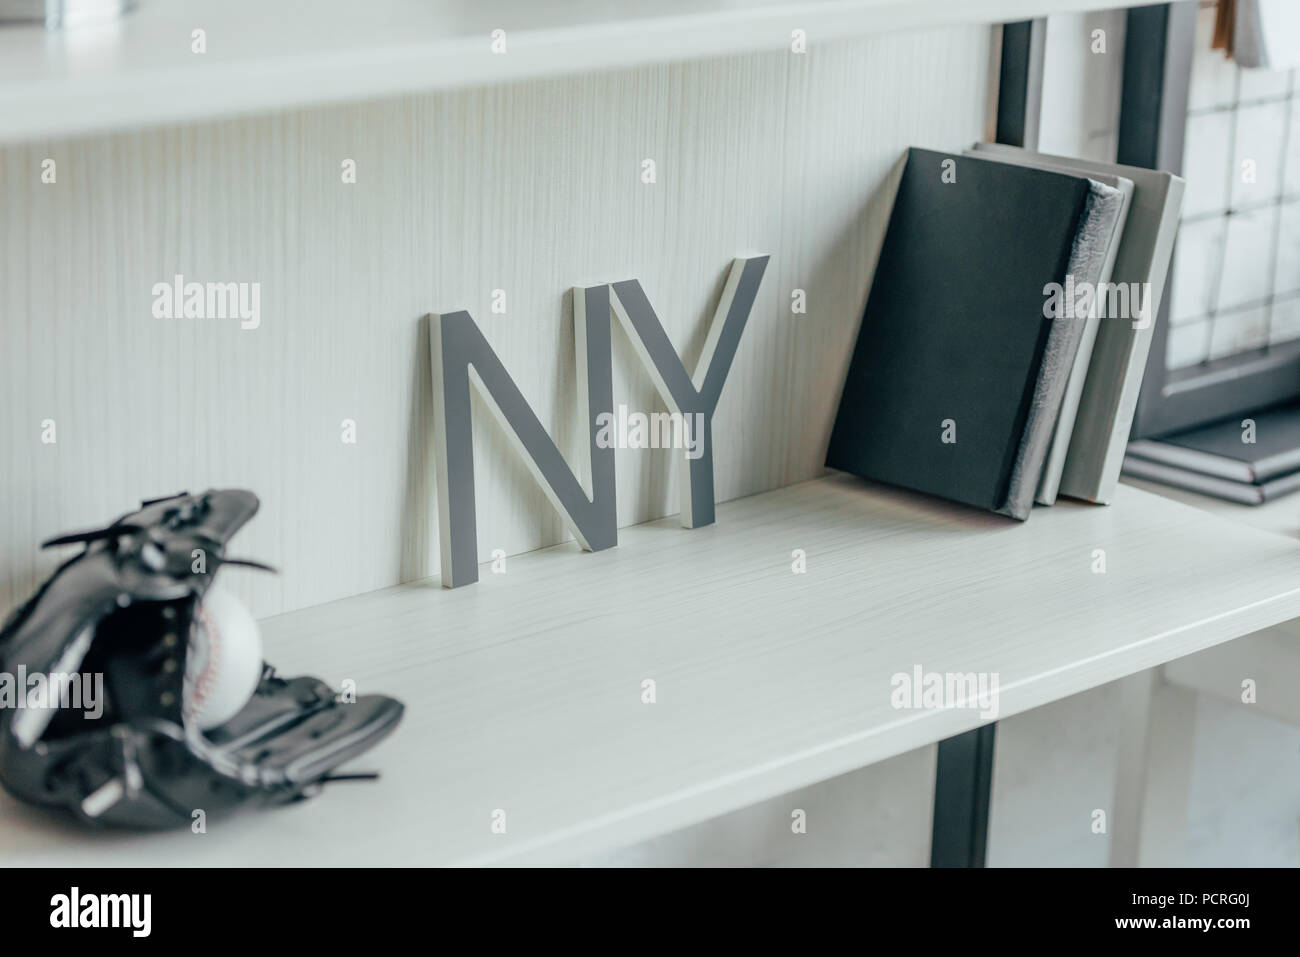 baseball ball, glove and word ny on shelf in office - Stock Image